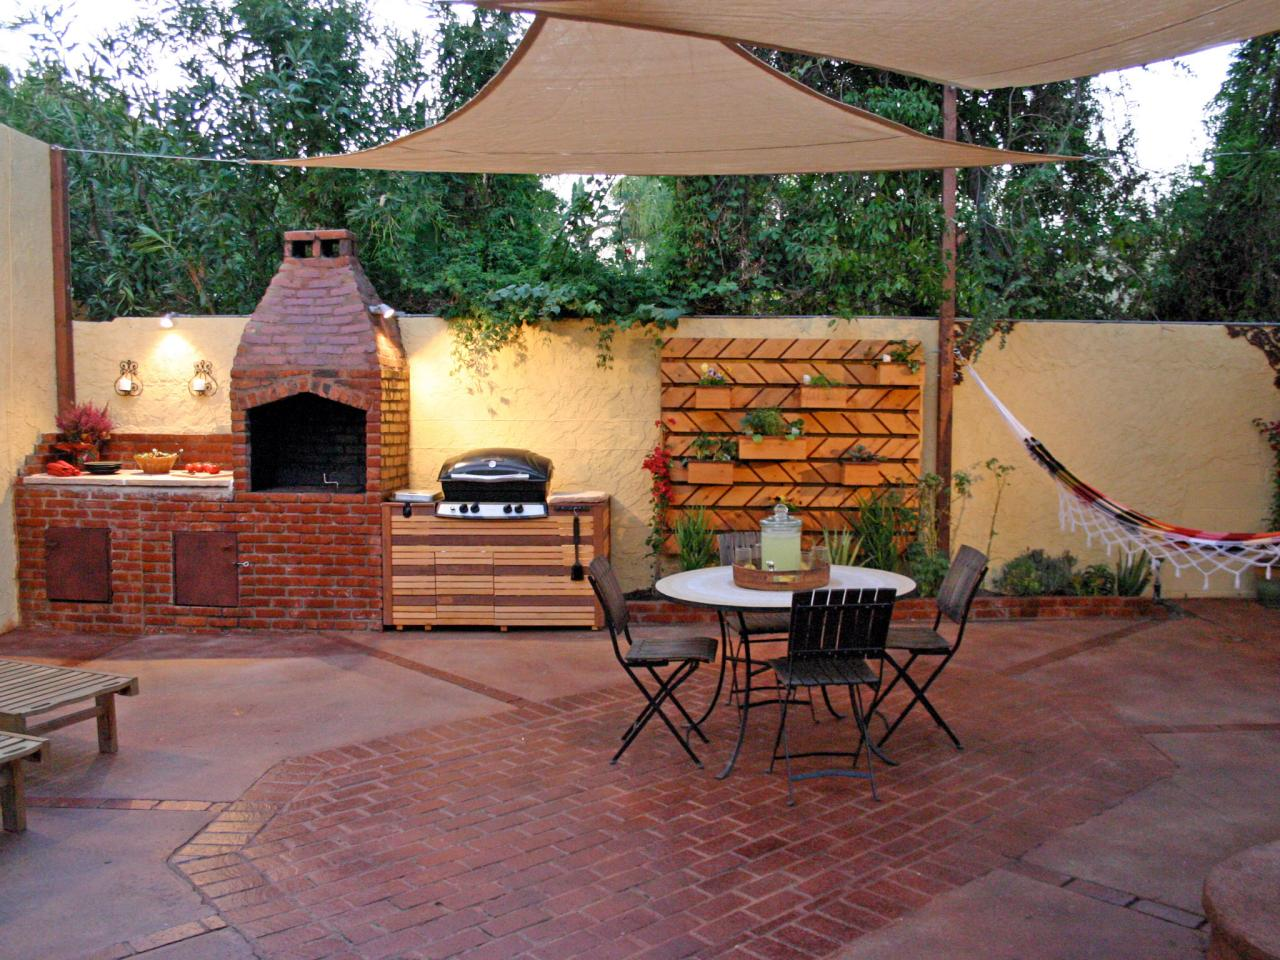 Great outdoor kitchen ideas tags: qmzofvp